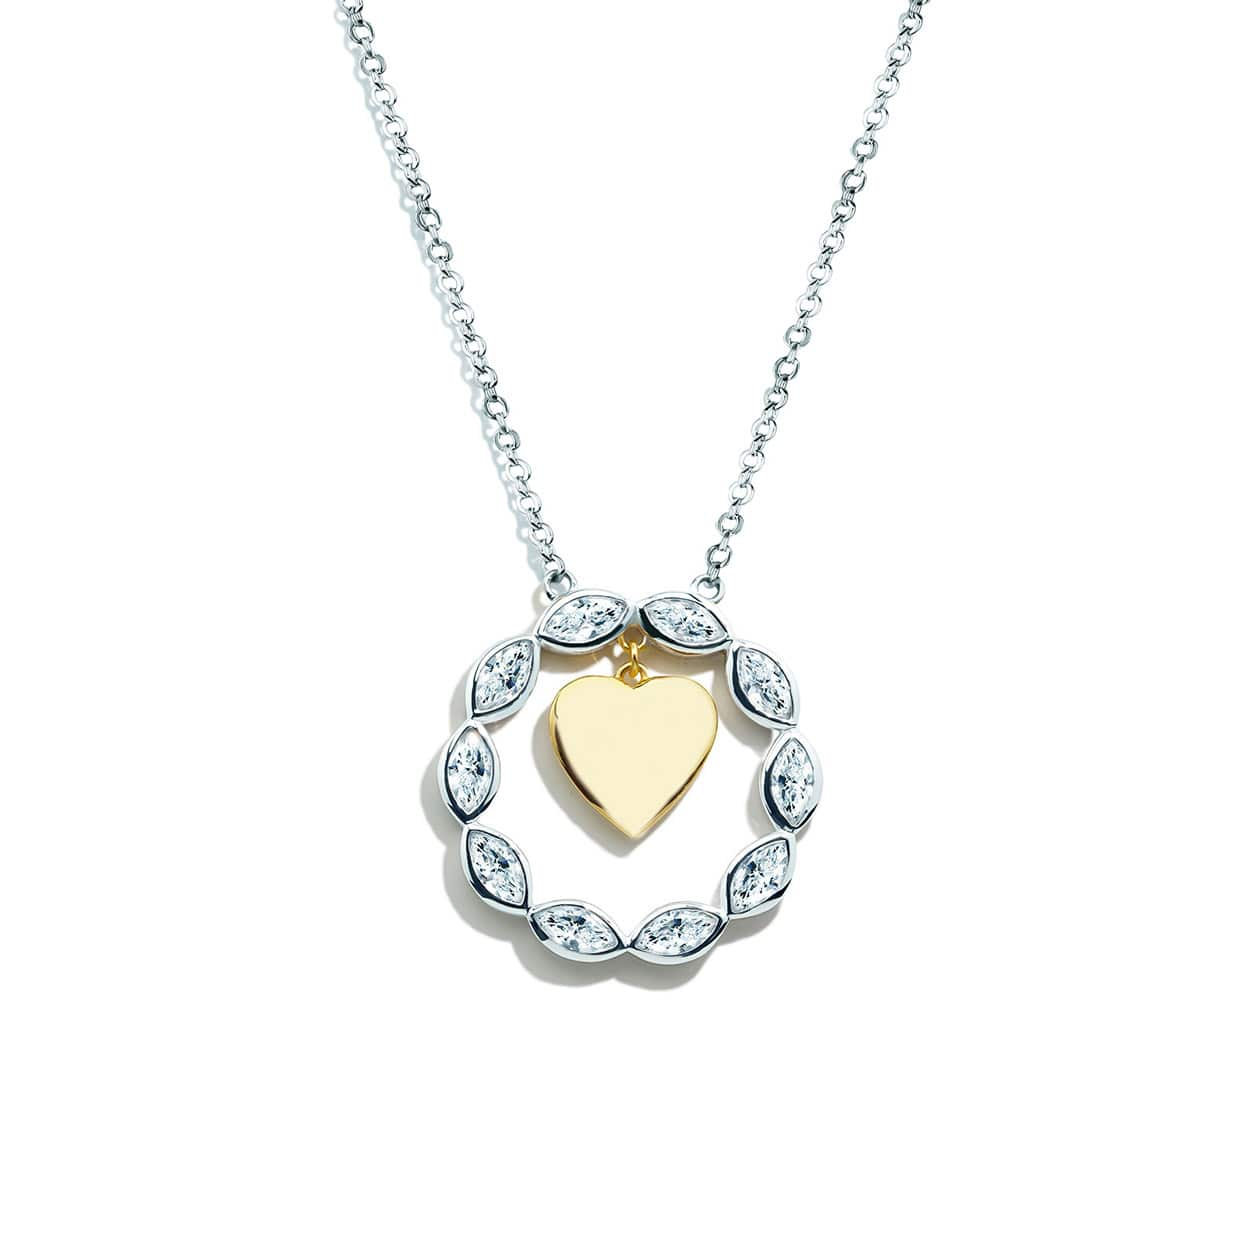 Loving Gold & Silver Moveable Heart Necklace - Abelstedt